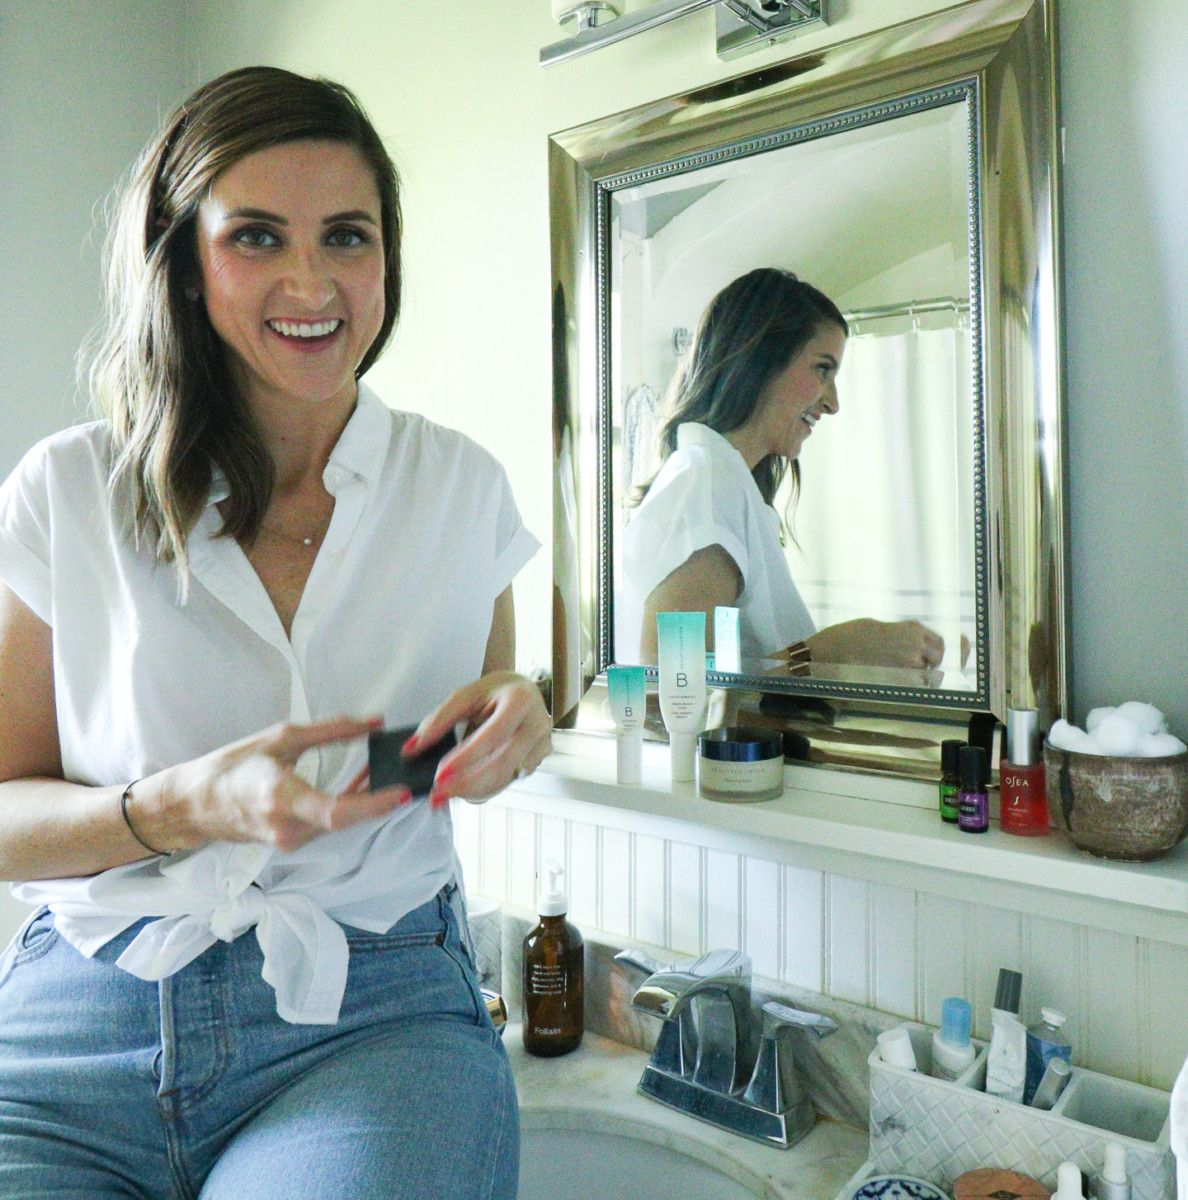 Cobalt Chronicles, Houston lifestyle blogger, is sharing her Clean Beauty Story and why she's making the change to cleaner, safer beauty products!